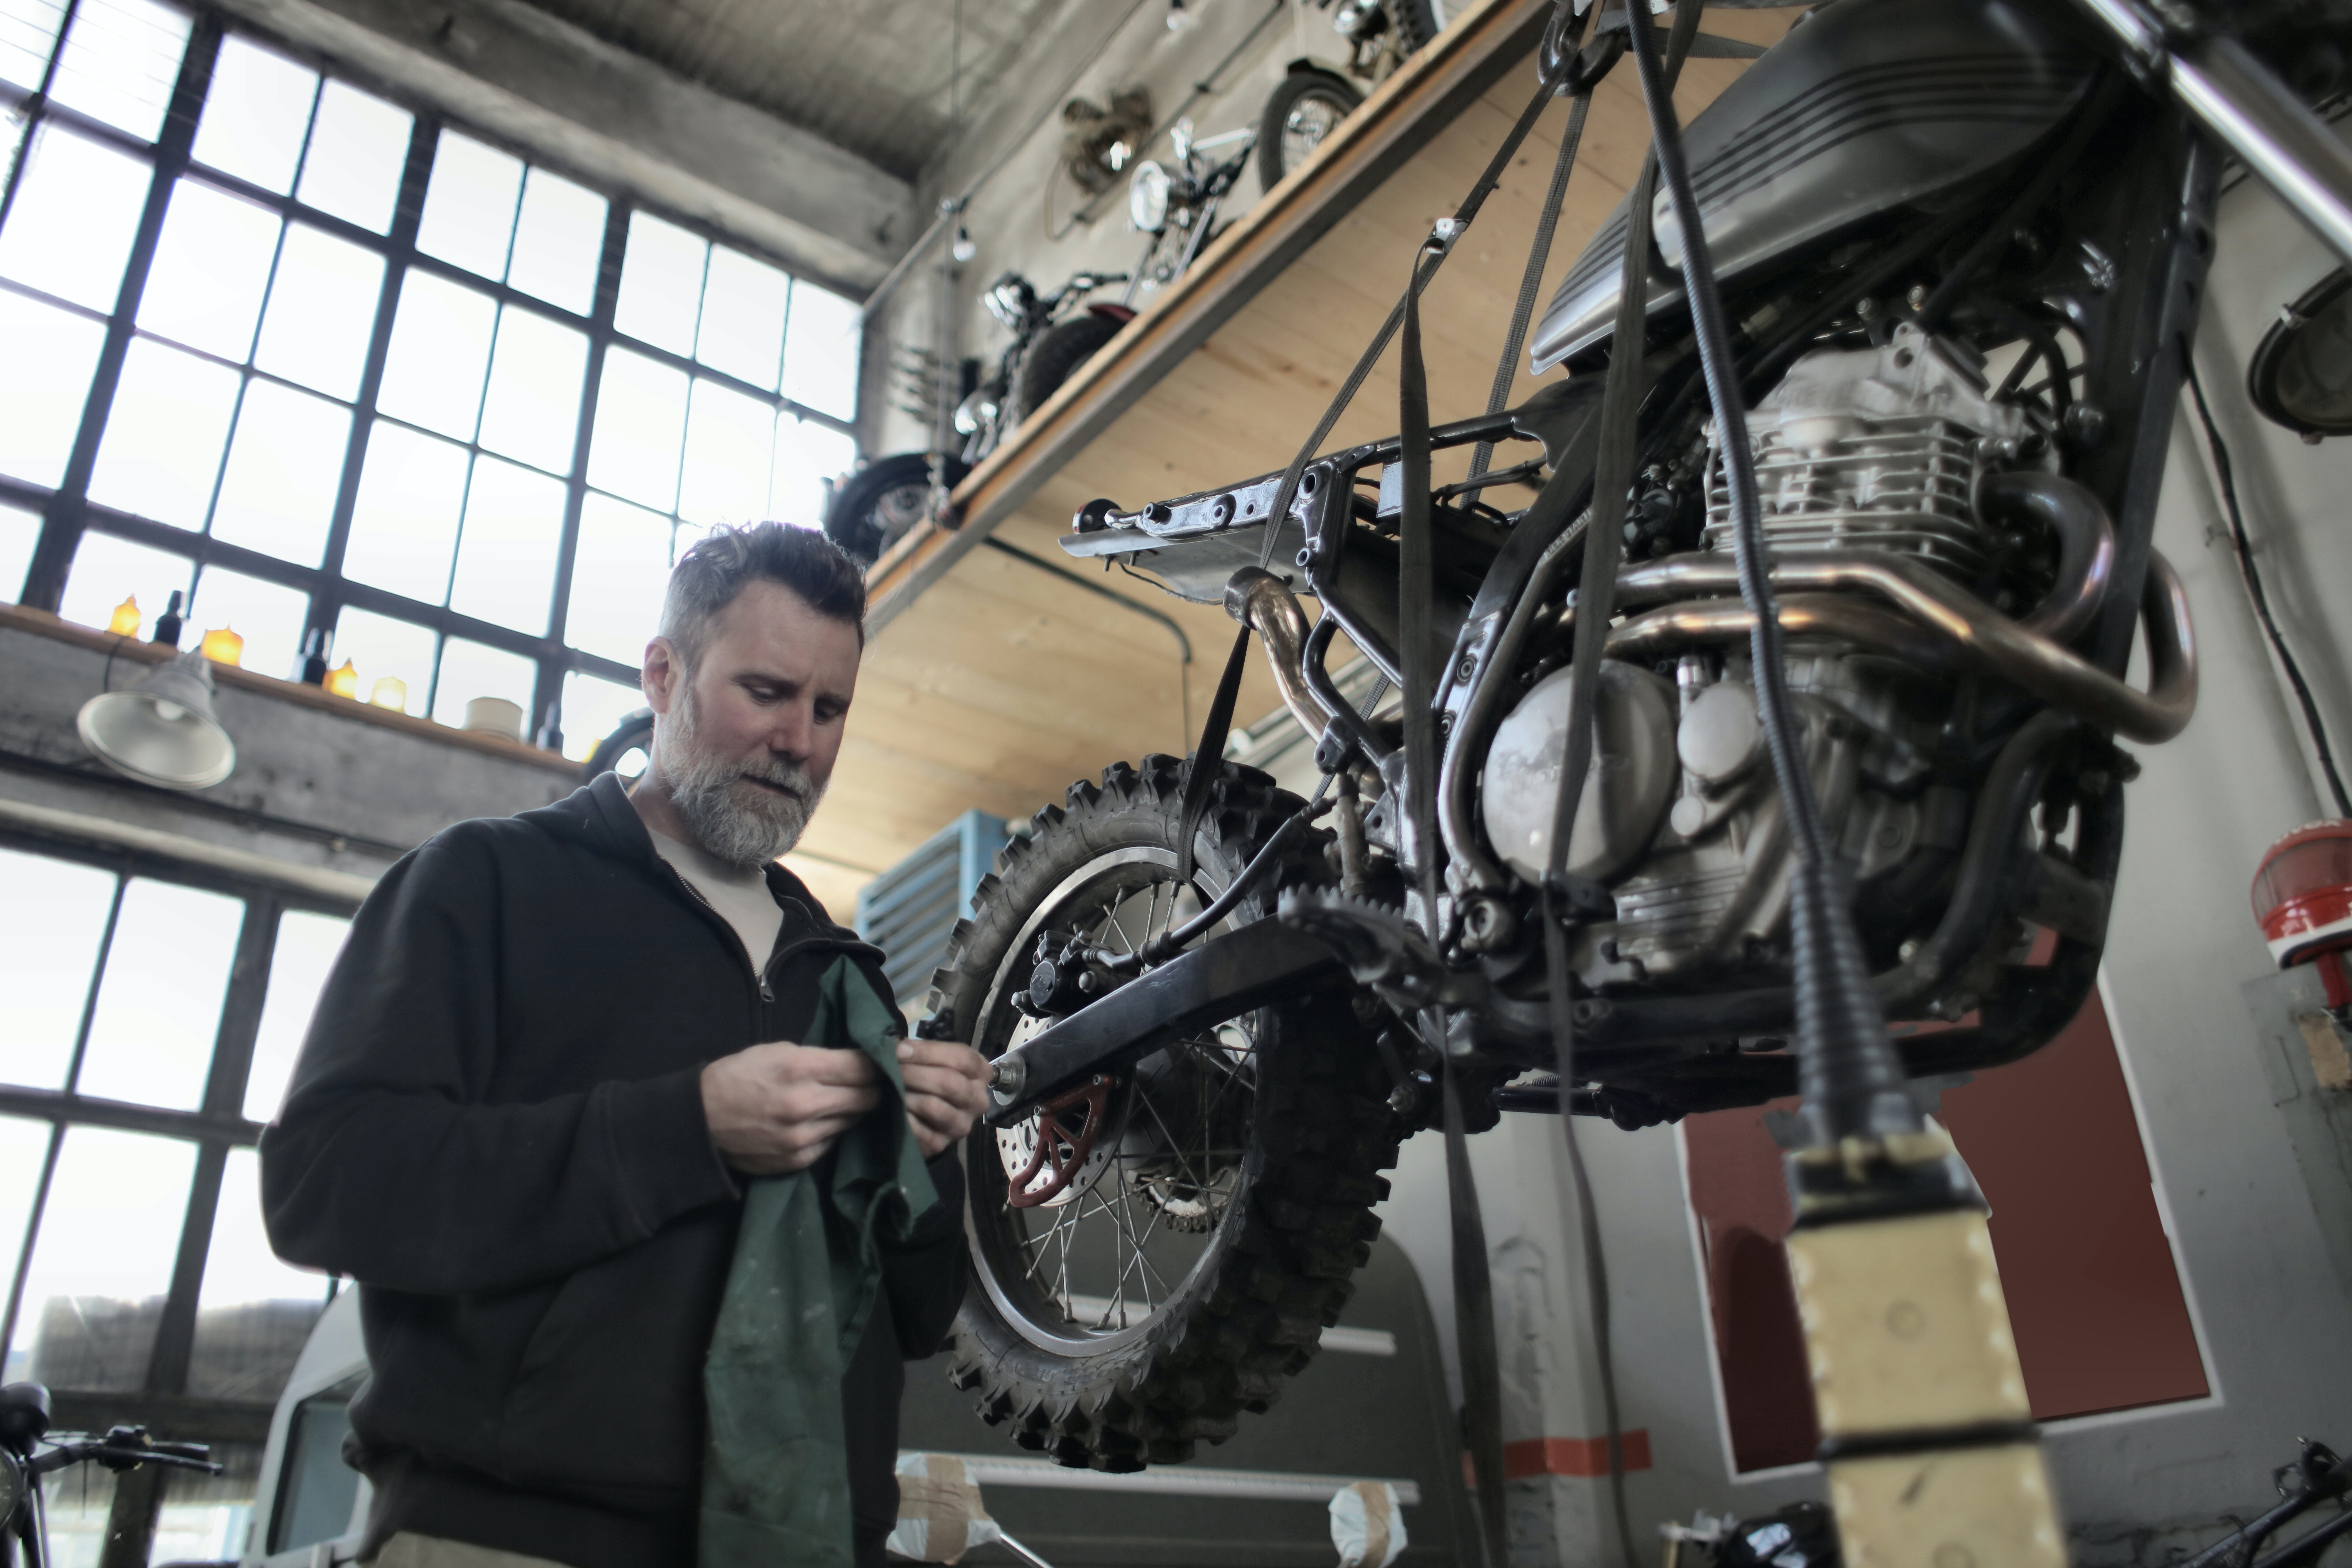 man working to improve the bike